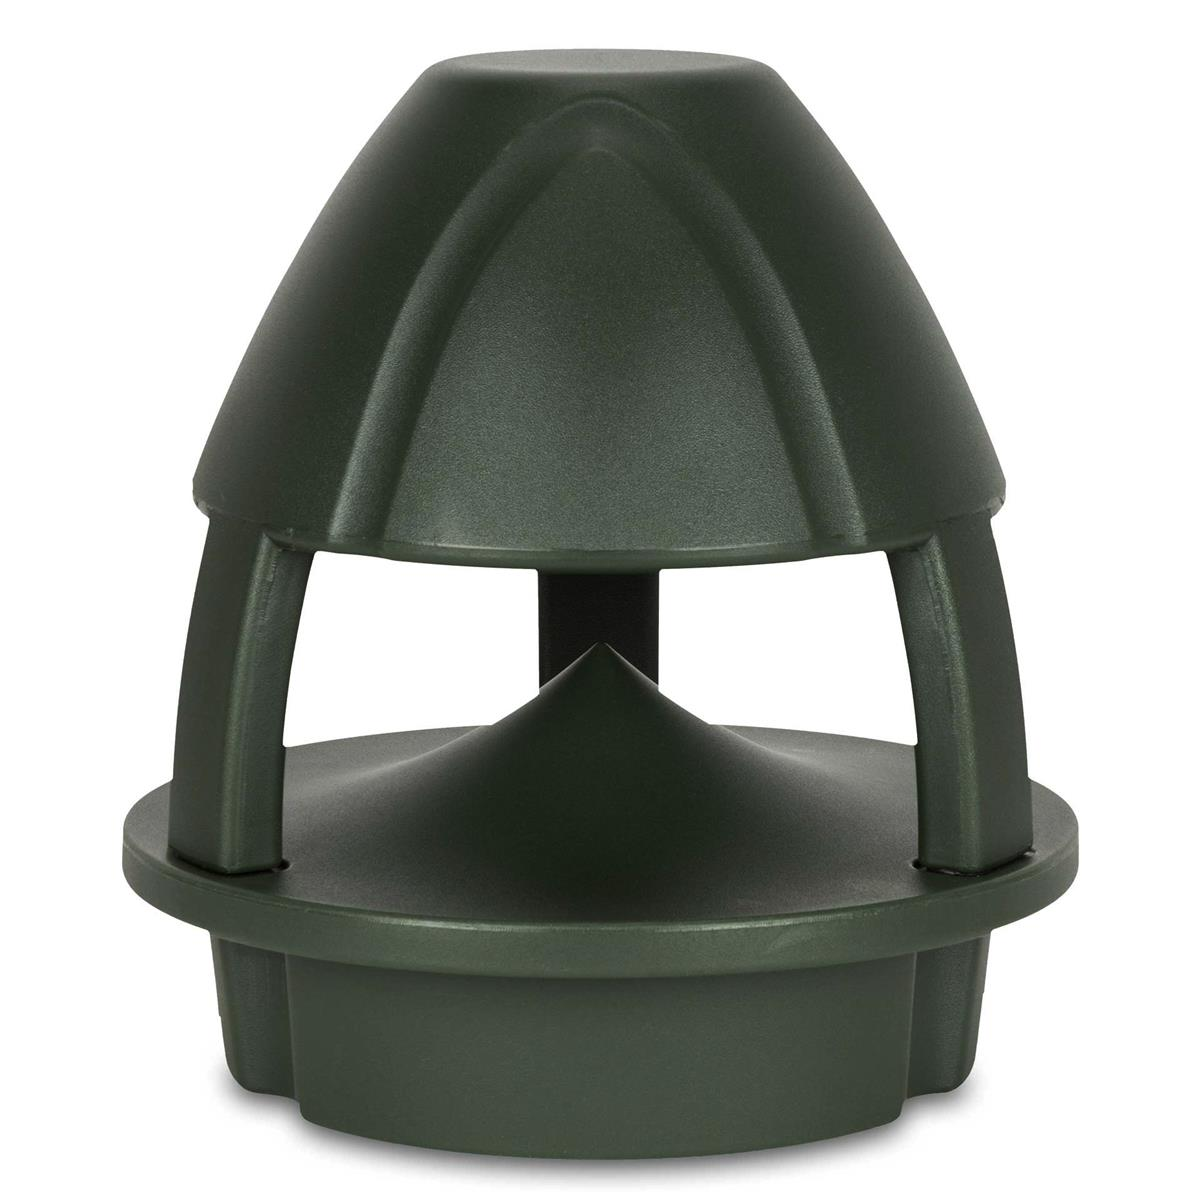 RCF Garden speaker - IP56 - coaxial transducers